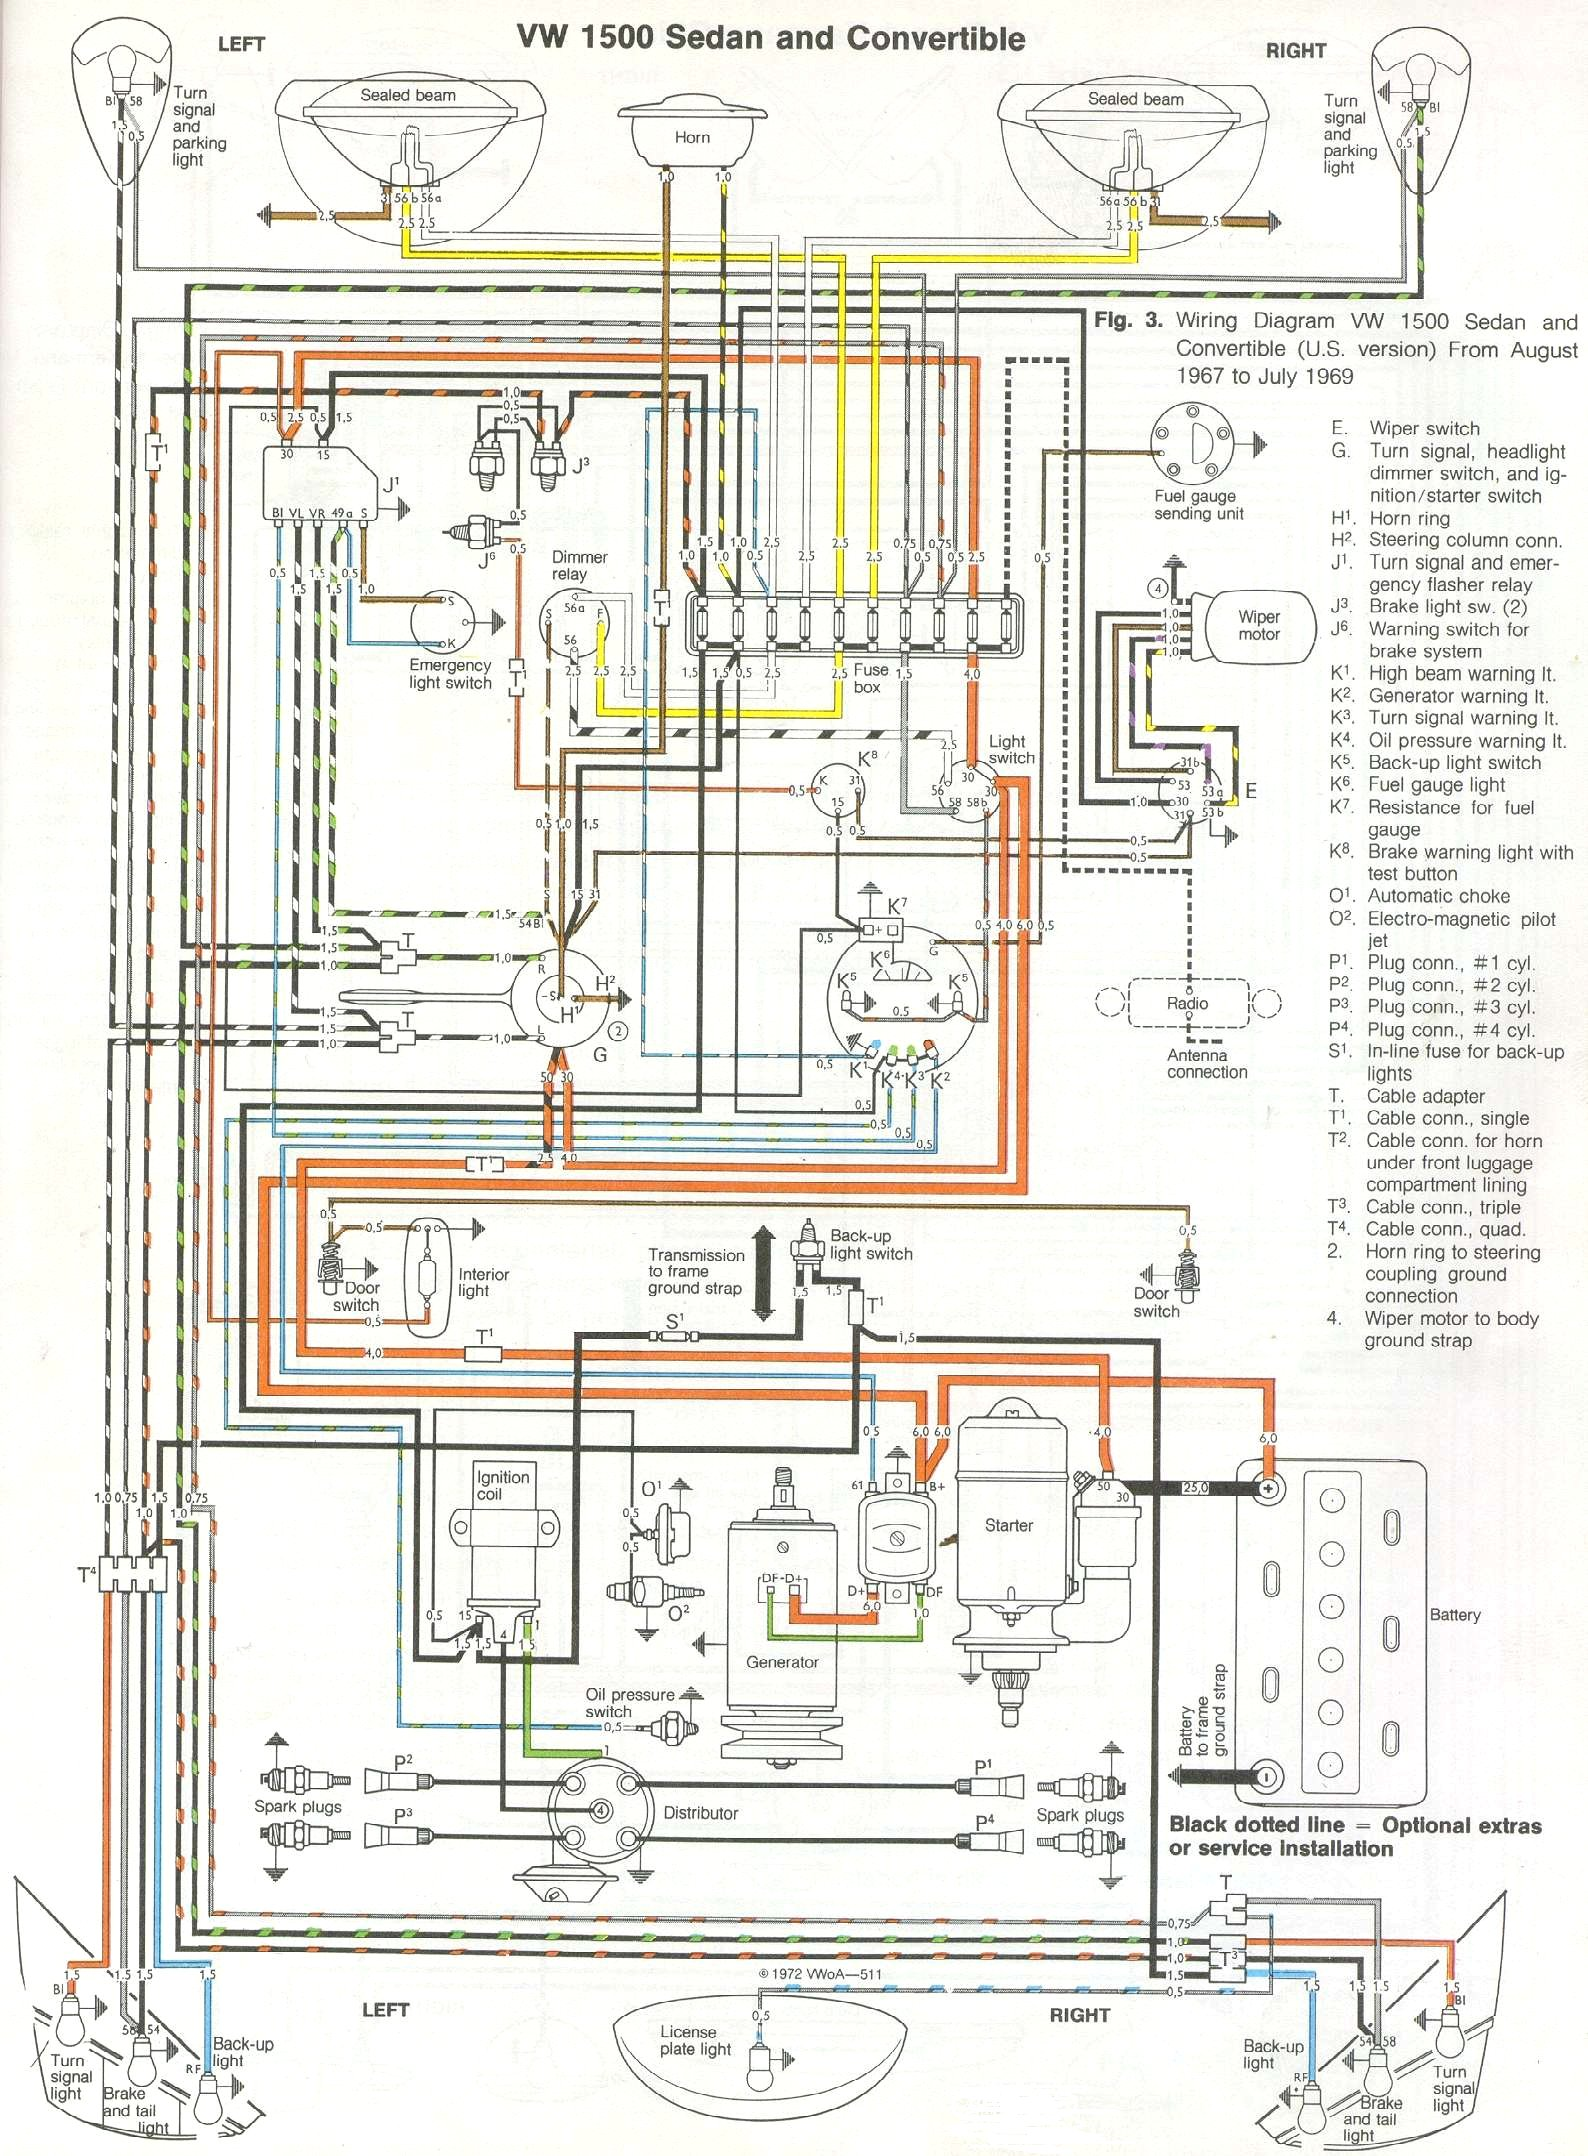 bug_6869 1968 69 beetle wiring diagram (usa) thegoldenbug com 1957 vw bug wiring diagram at soozxer.org